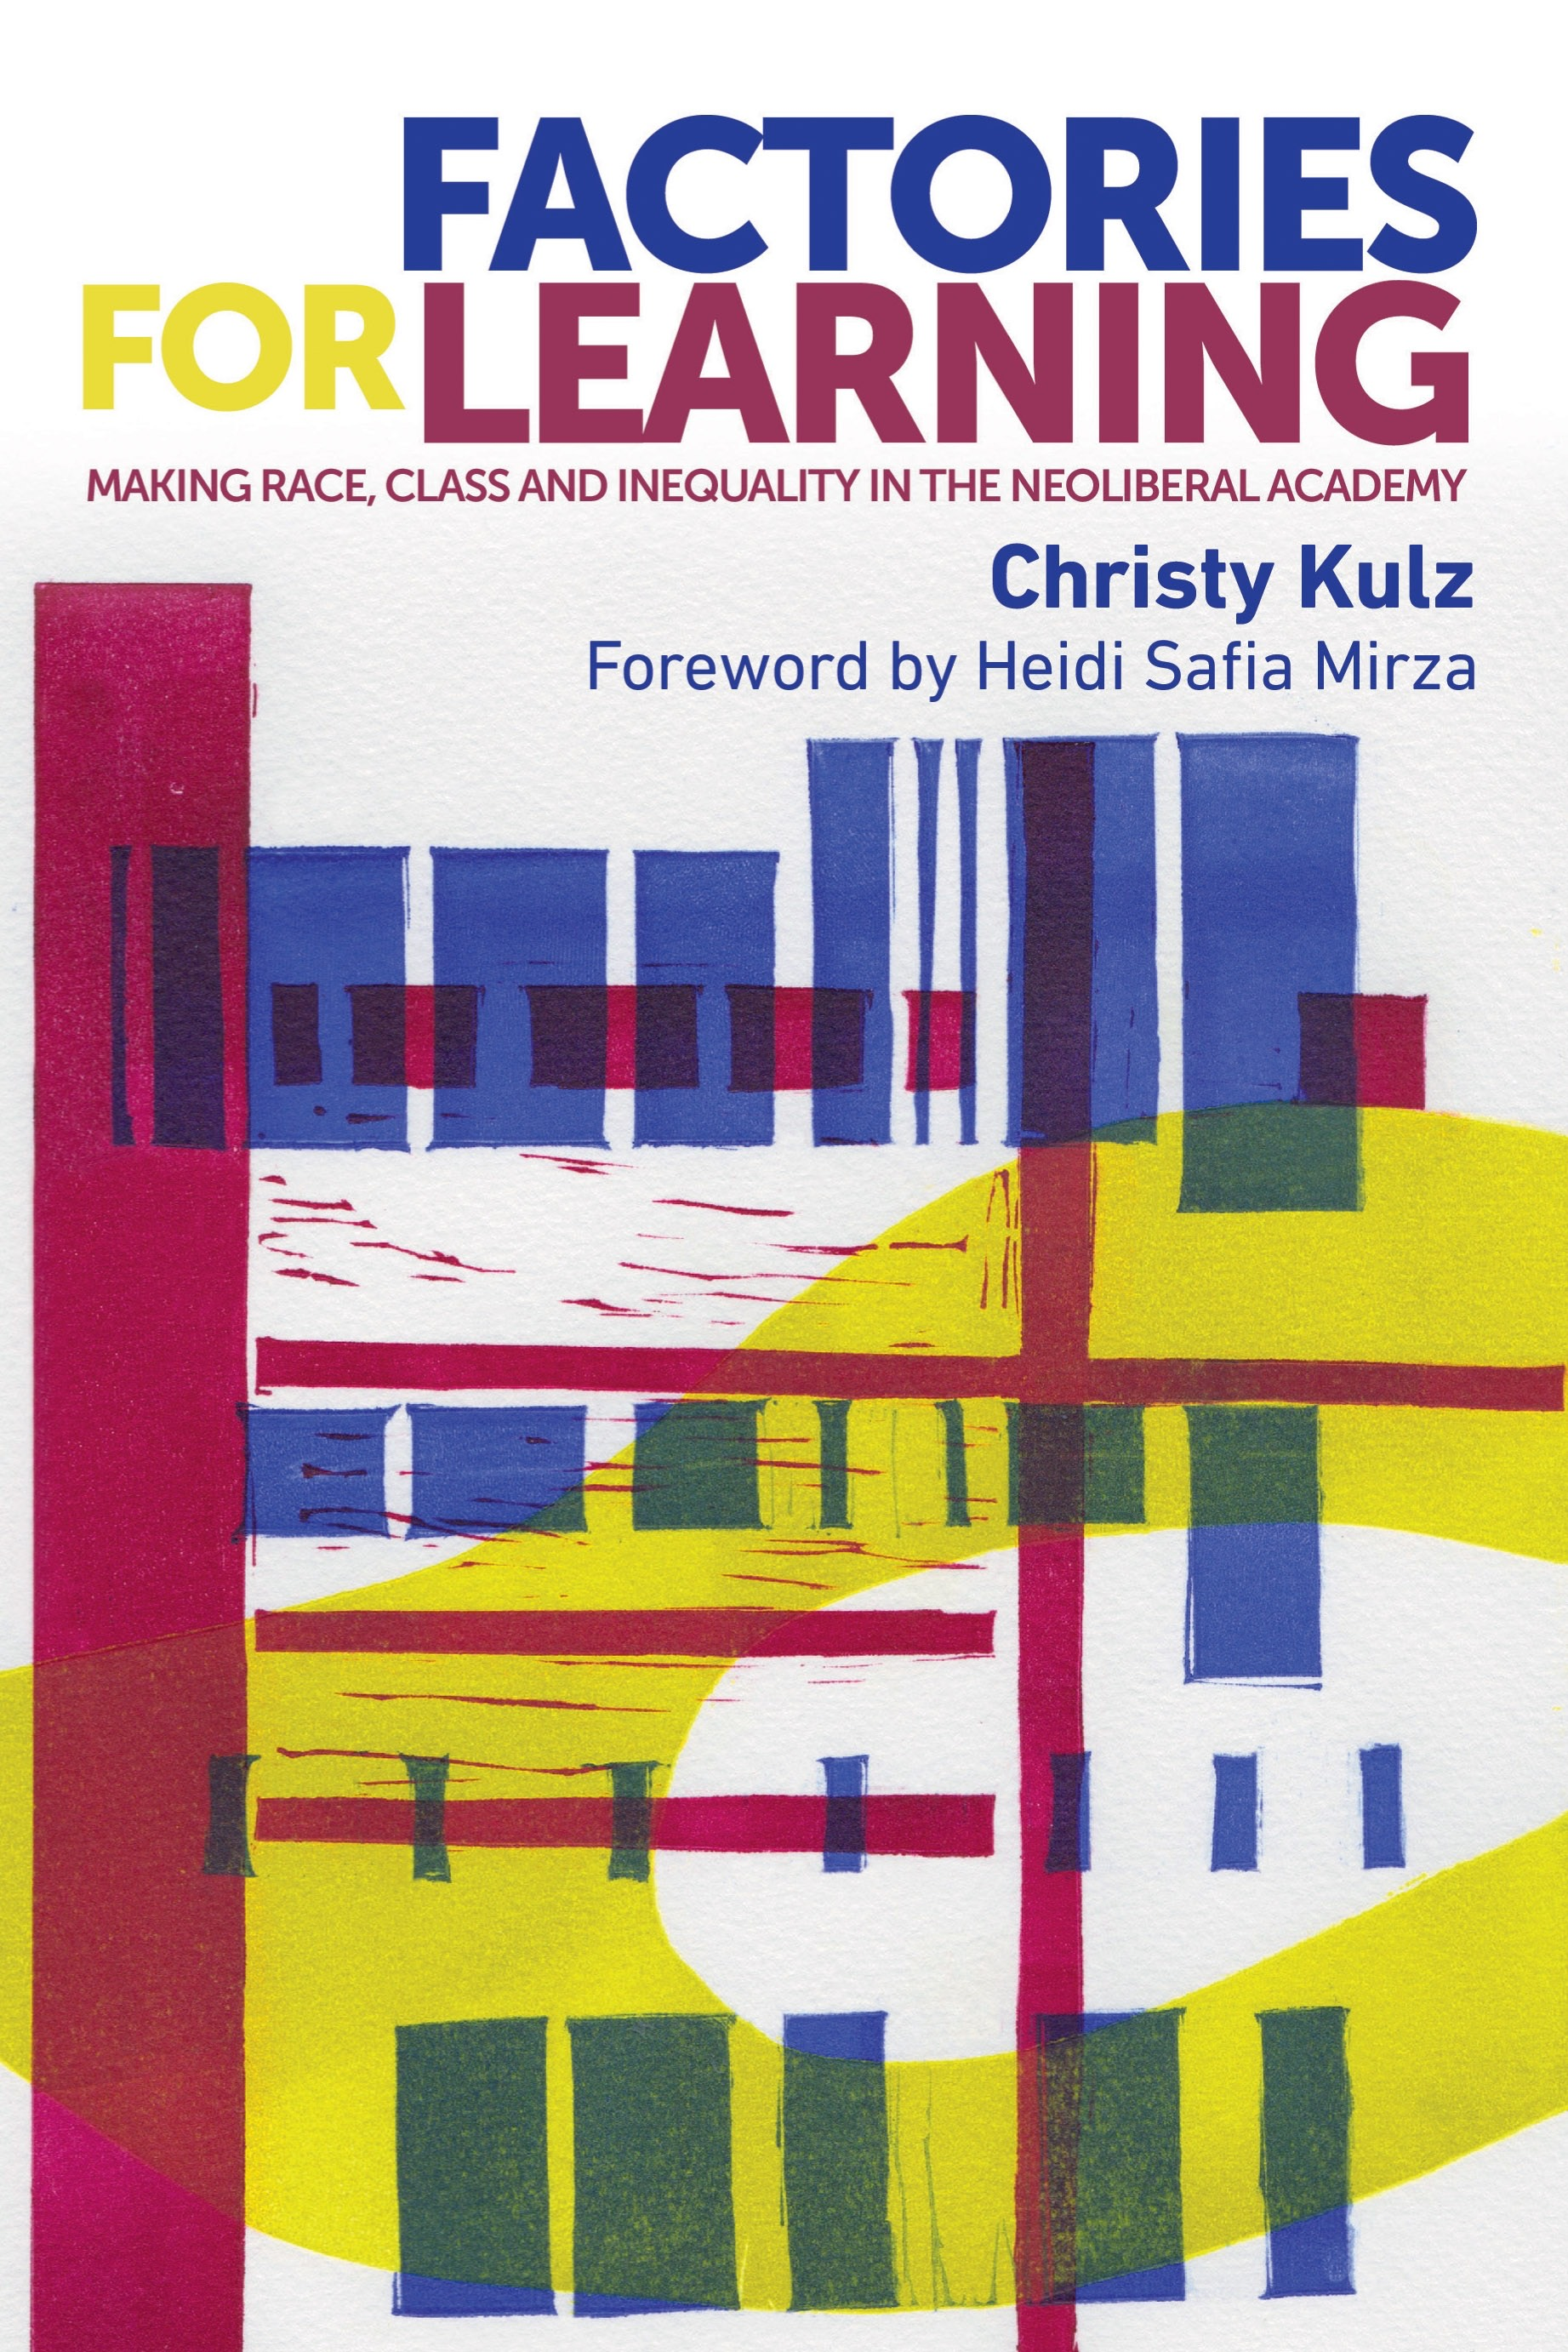 Factories for Learning book launch